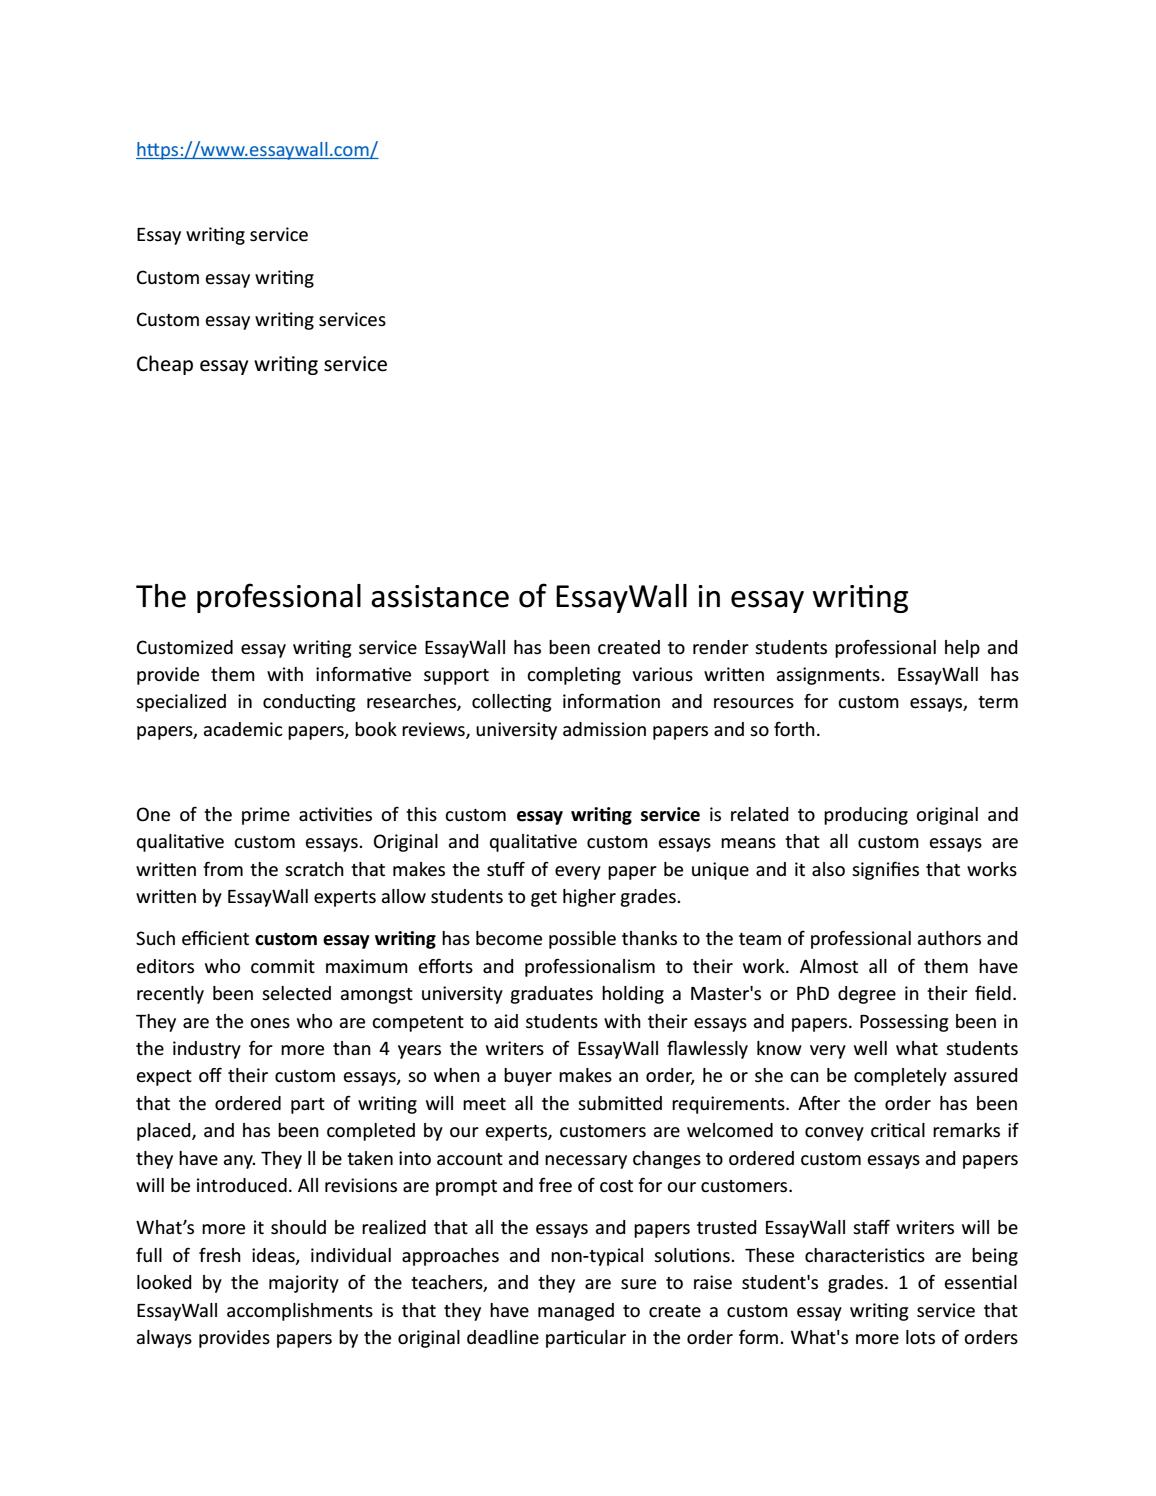 the professional assistance of essaywall in essay writing by  the professional assistance of essaywall in essay writing by frederic sealey issuu